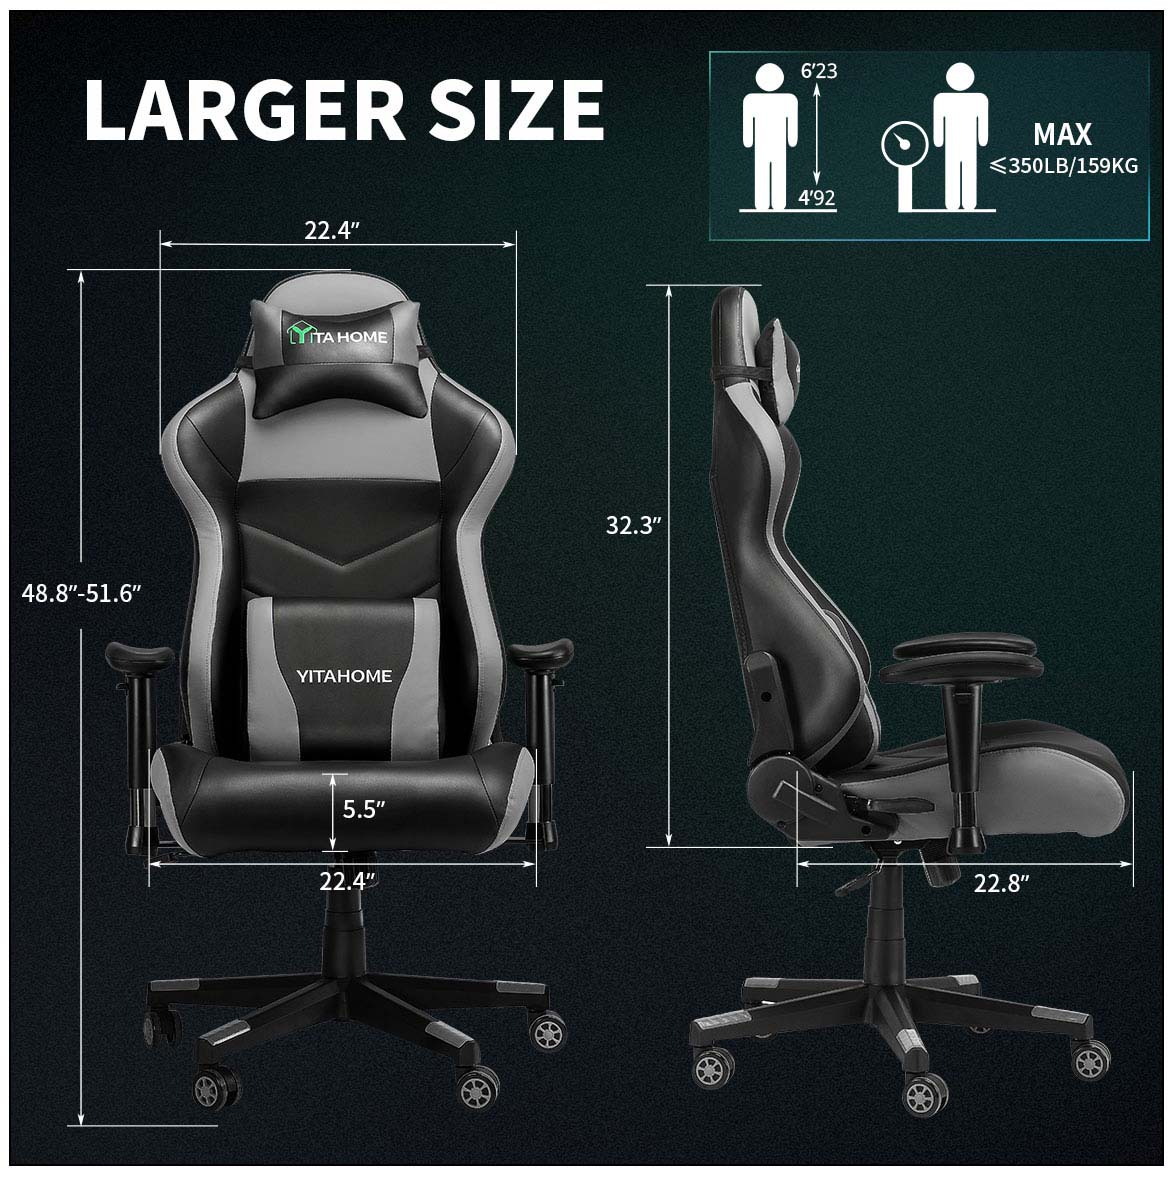 top gaming chairs larger size